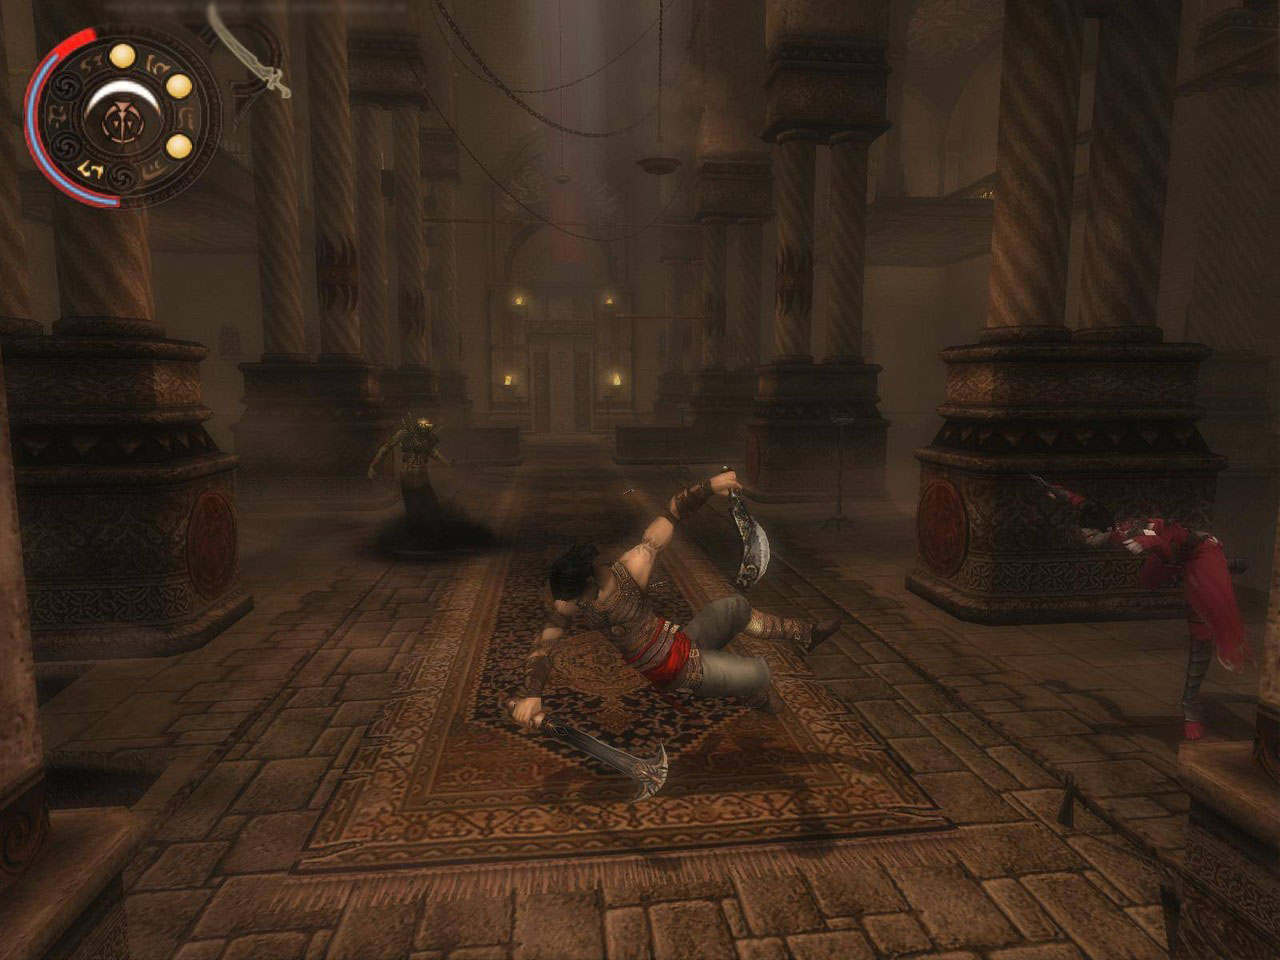 Prince of persia warrior with in game  nude image